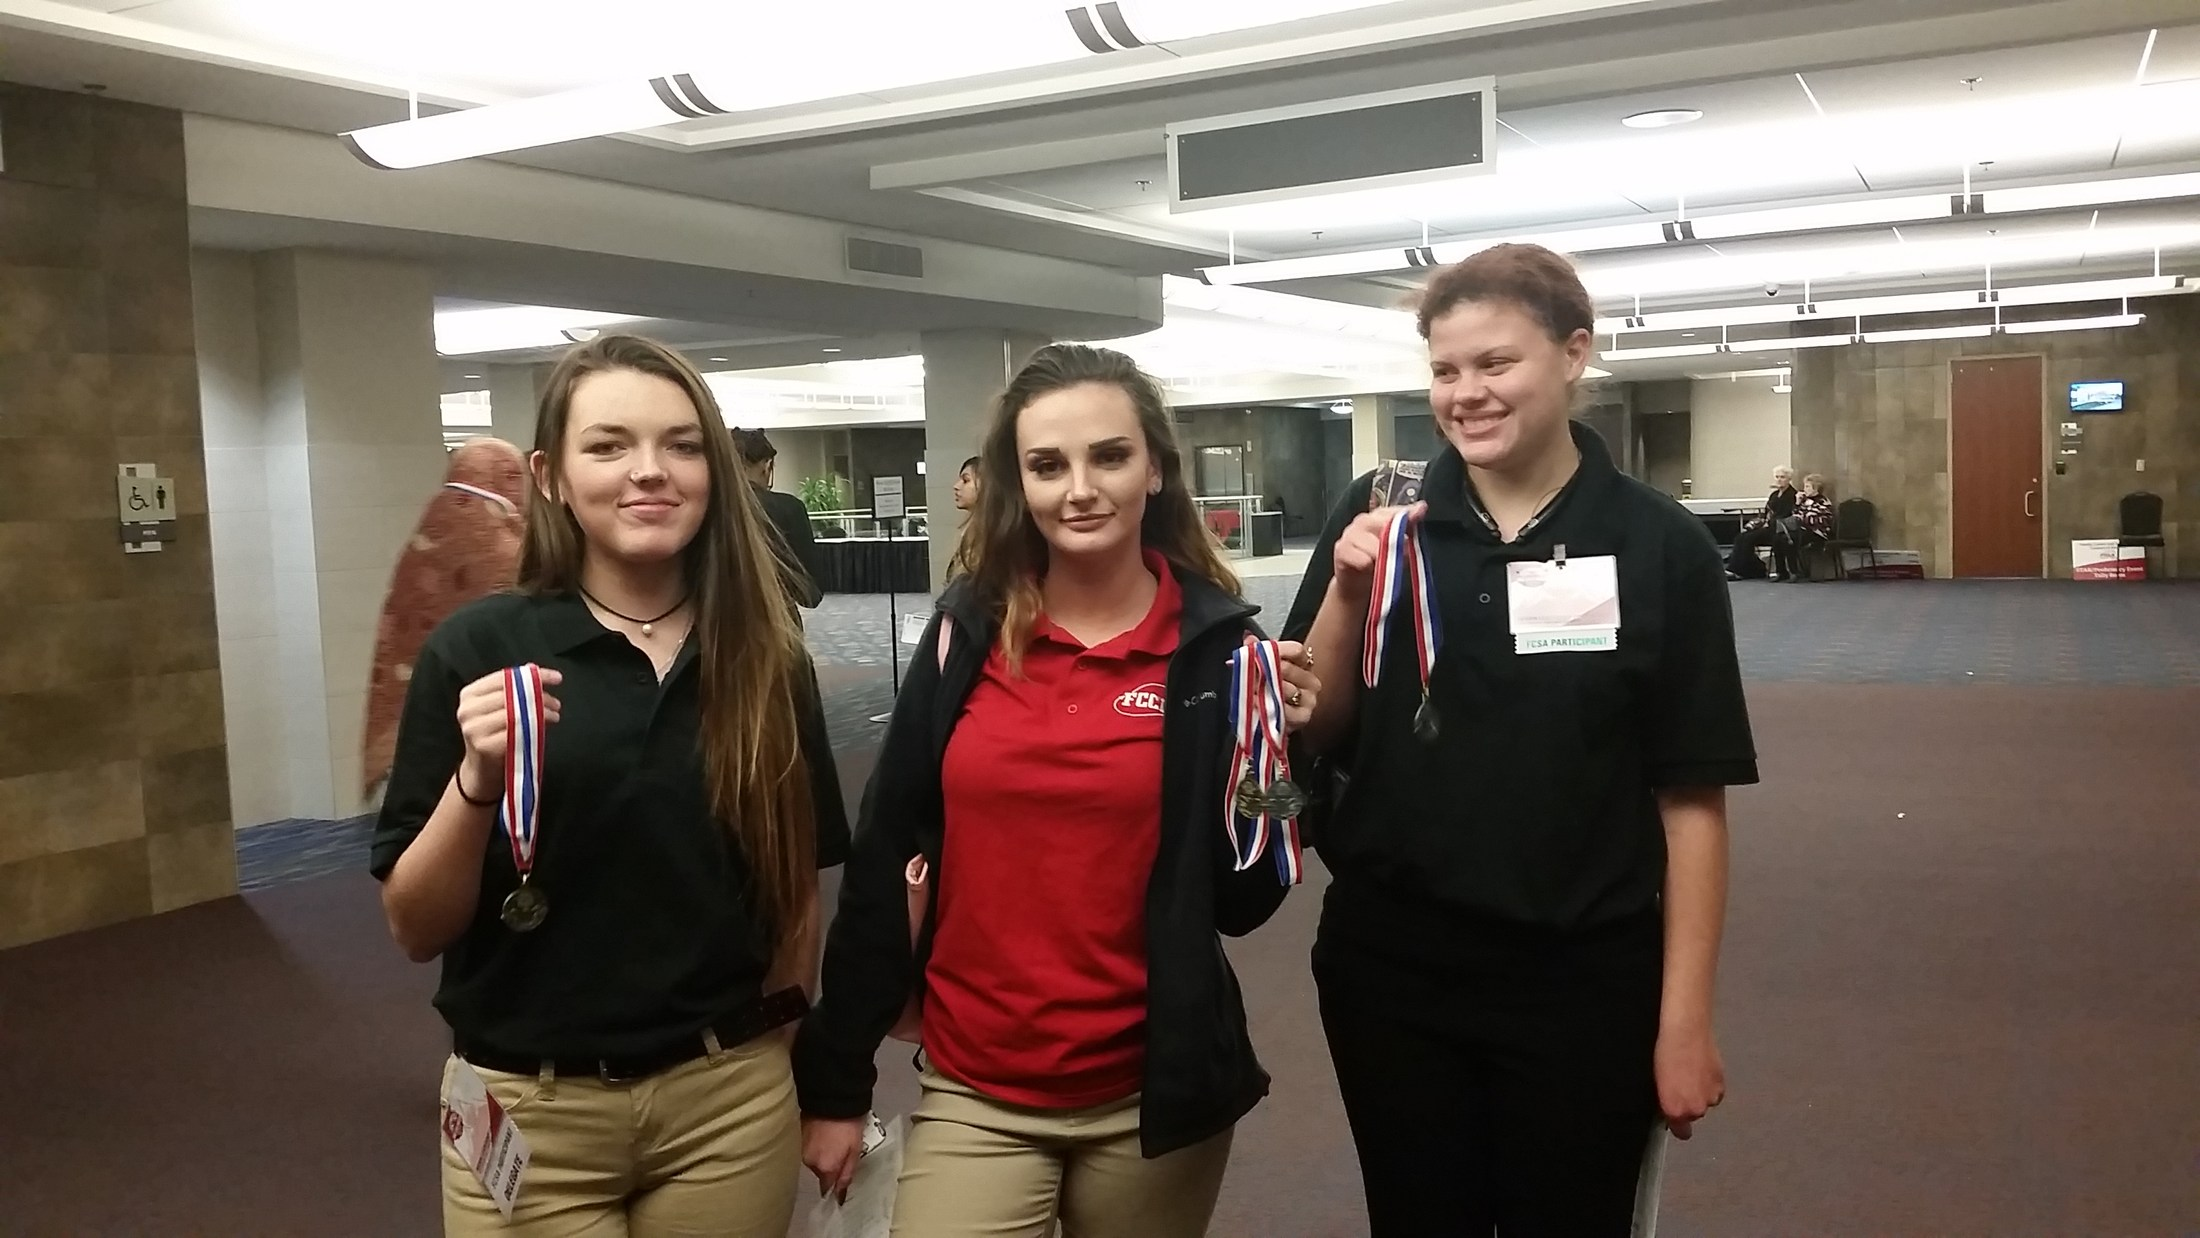 FCCLA Students Show Off Their Medals